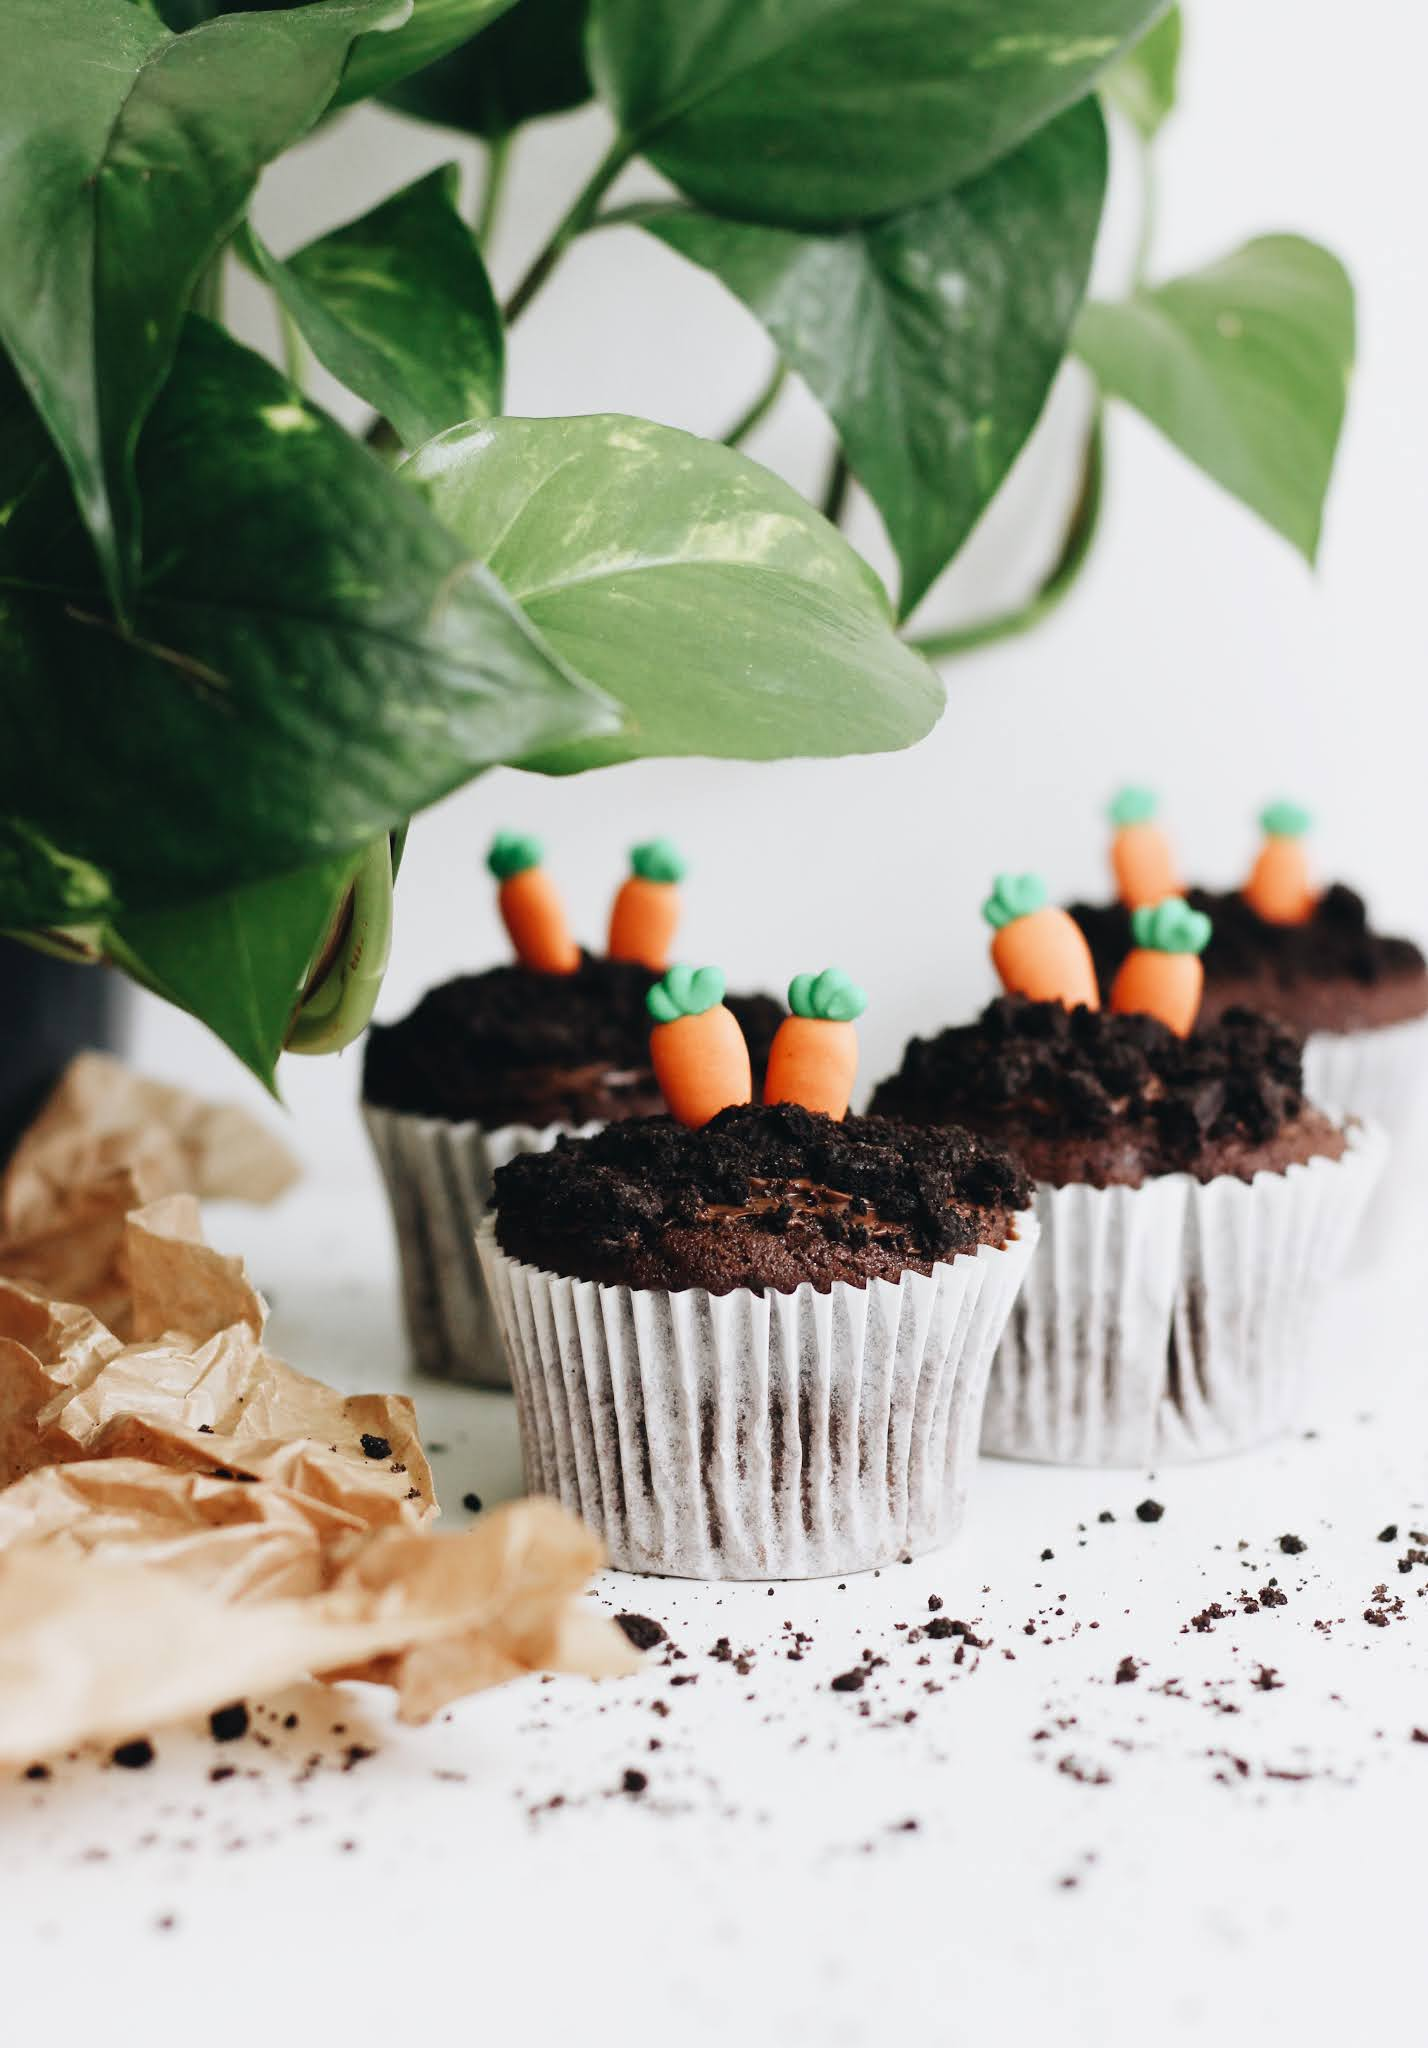 Chocolate Carrot Muffin Cupcake Recipe